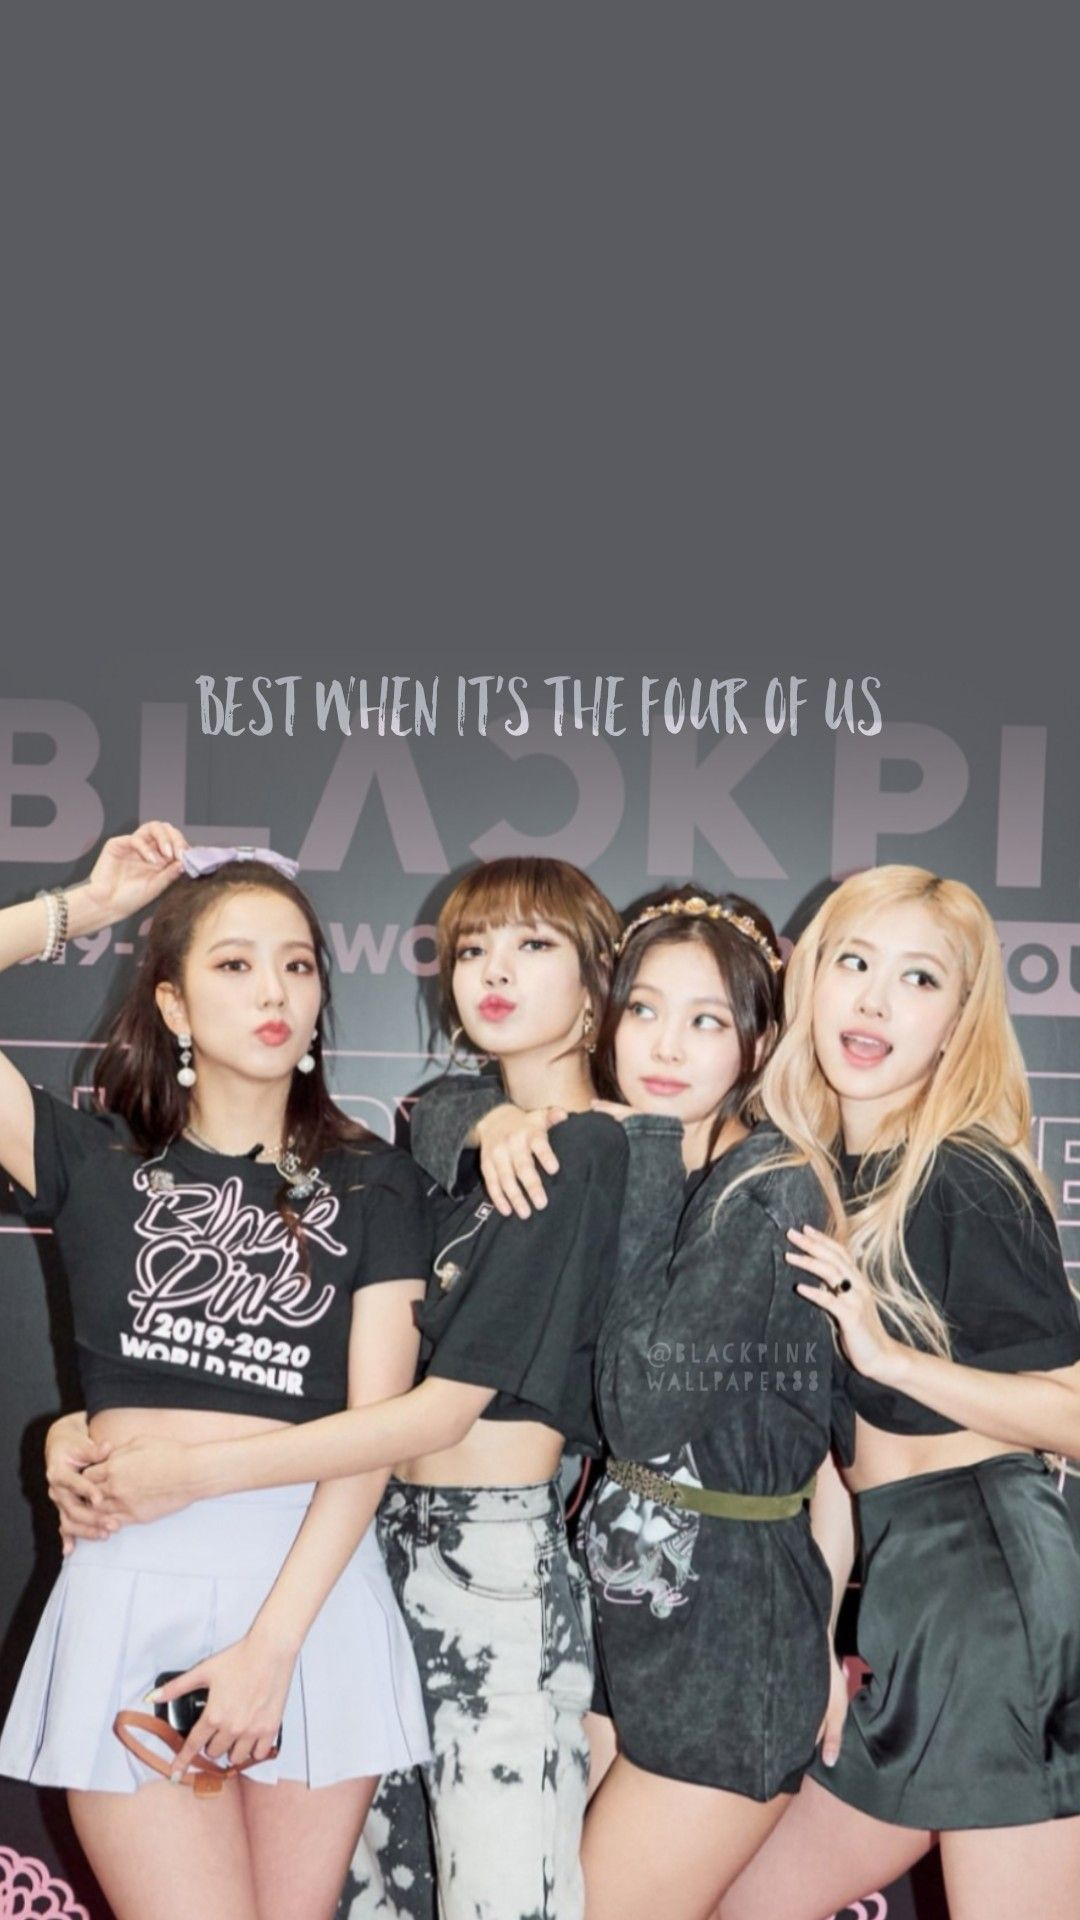 blacpinkwallpaper in 2020 (With images) Blackpink